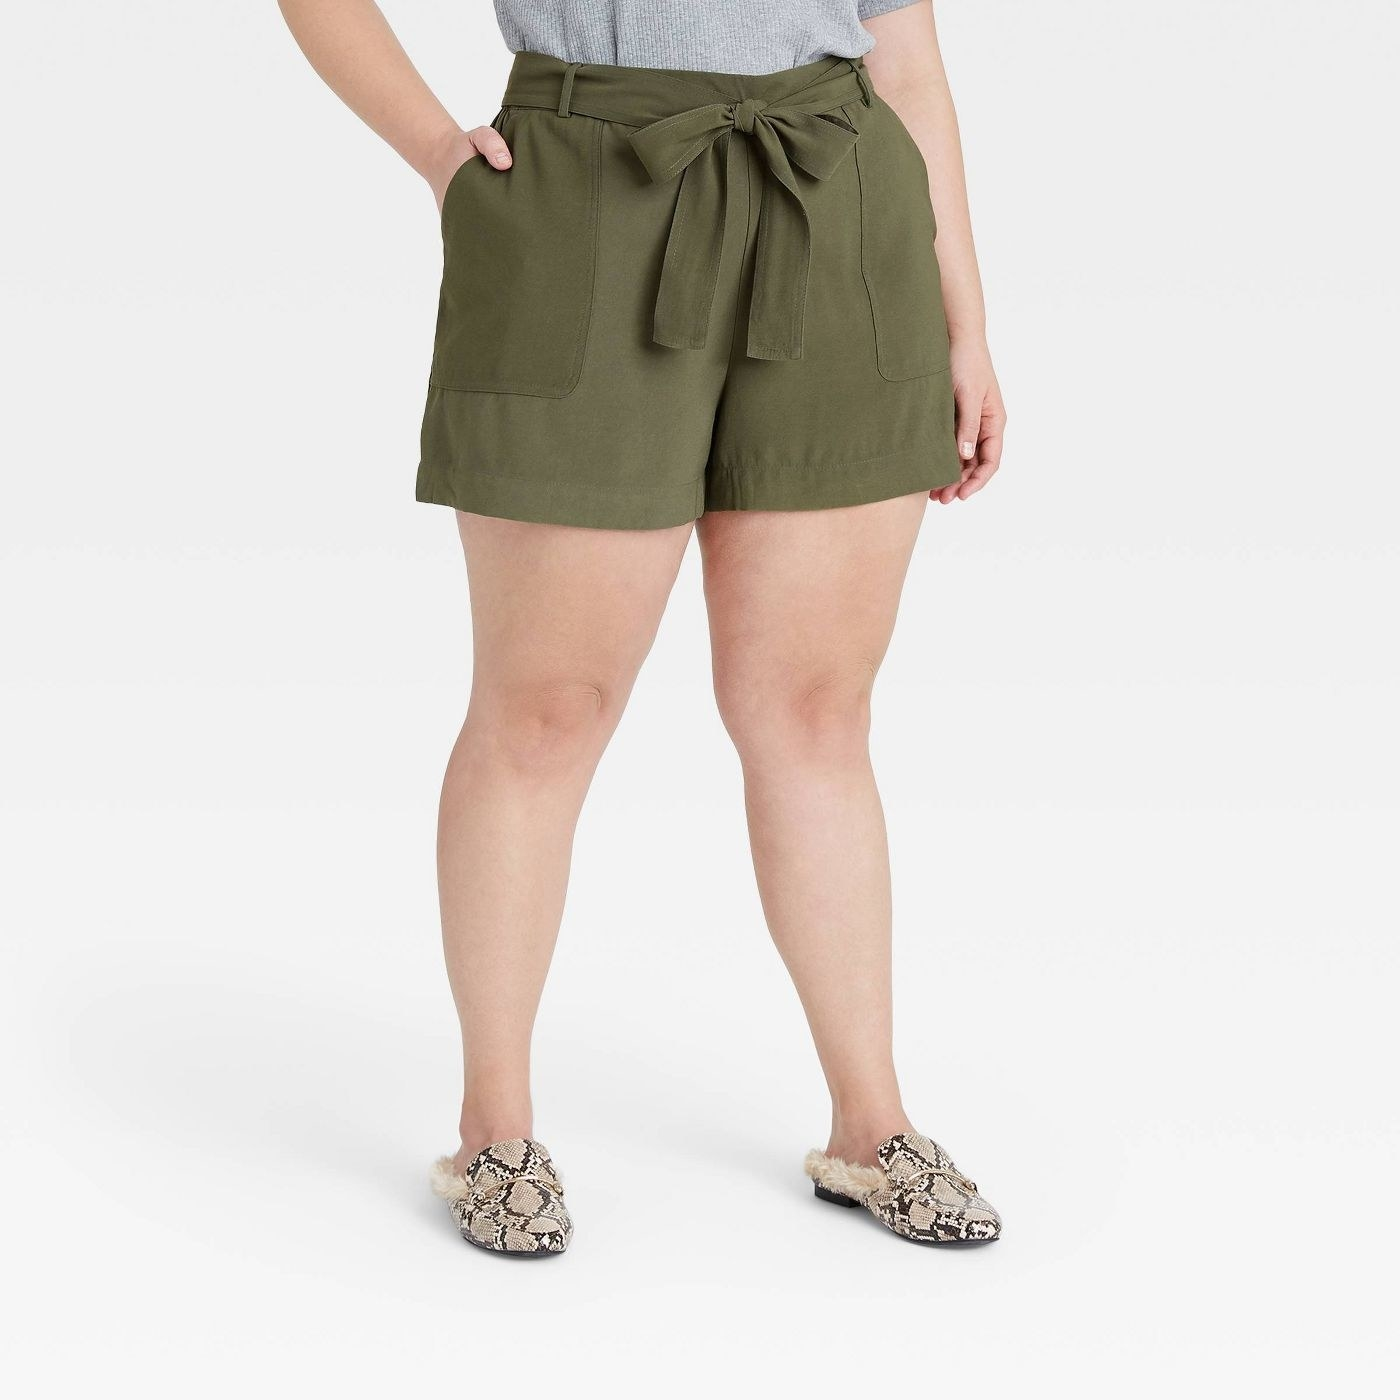 Model wearing green shorts with two pockets, shorts go past the thighs